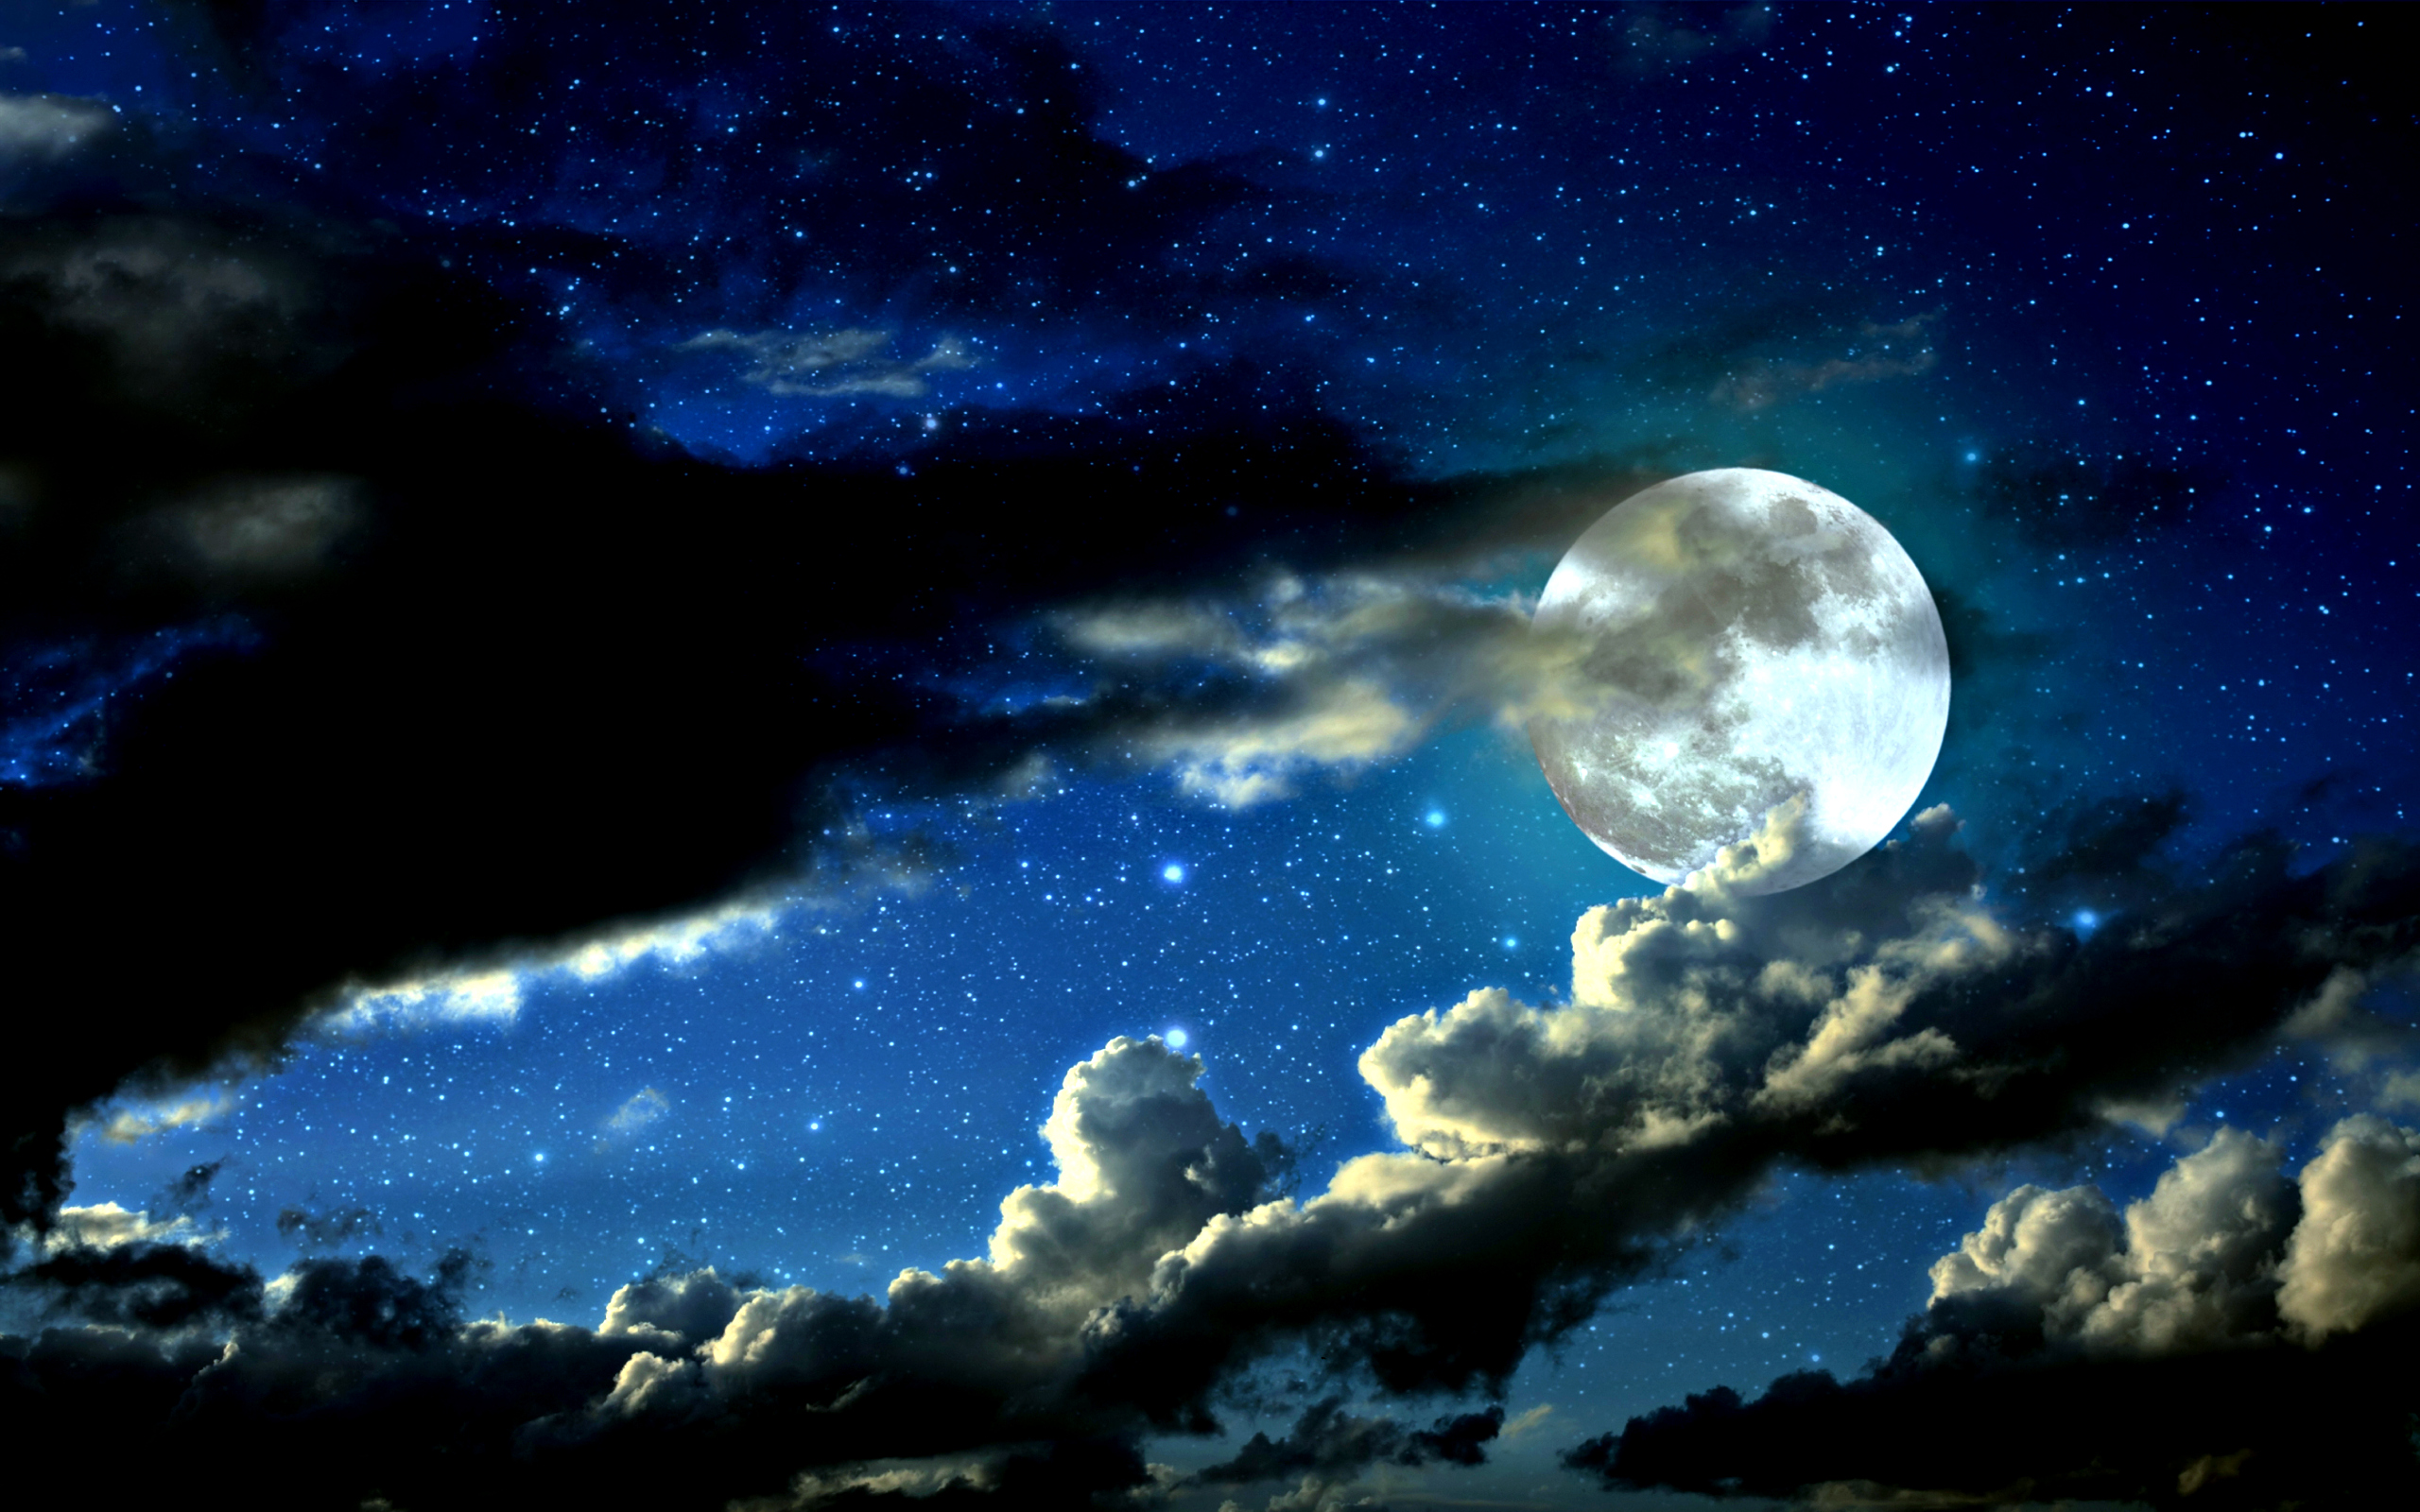 Sparkling Milky Way With The Moon - Sparkling Milky Way With The Moon